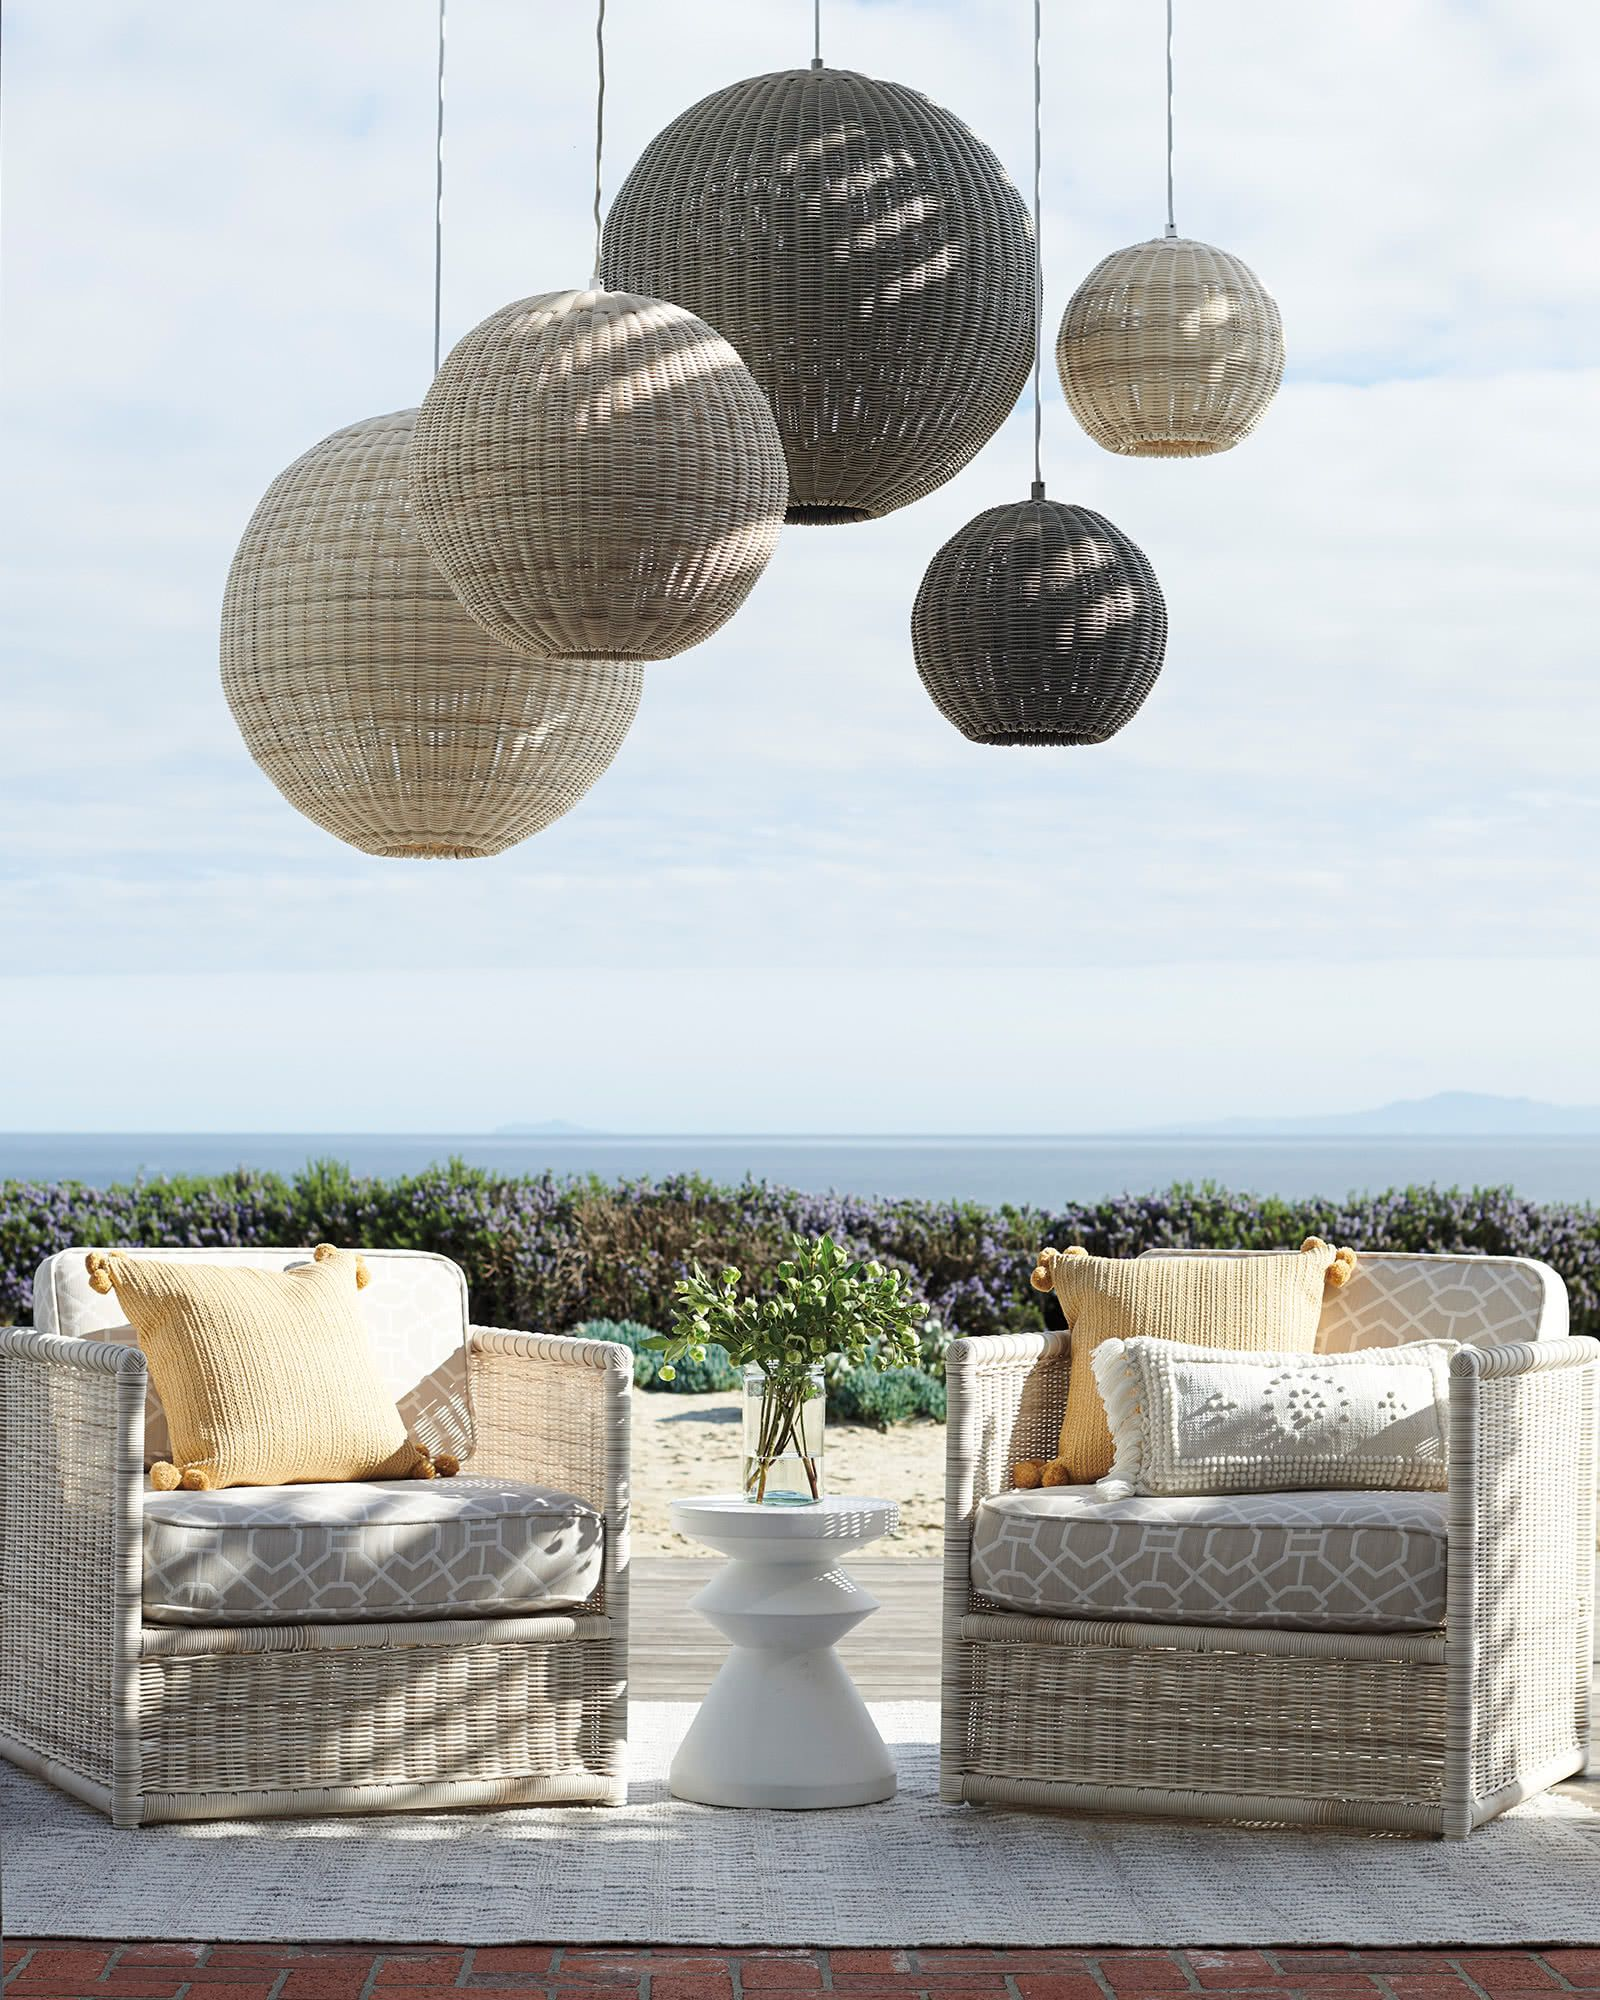 An overview Rattan all-natural amazing material